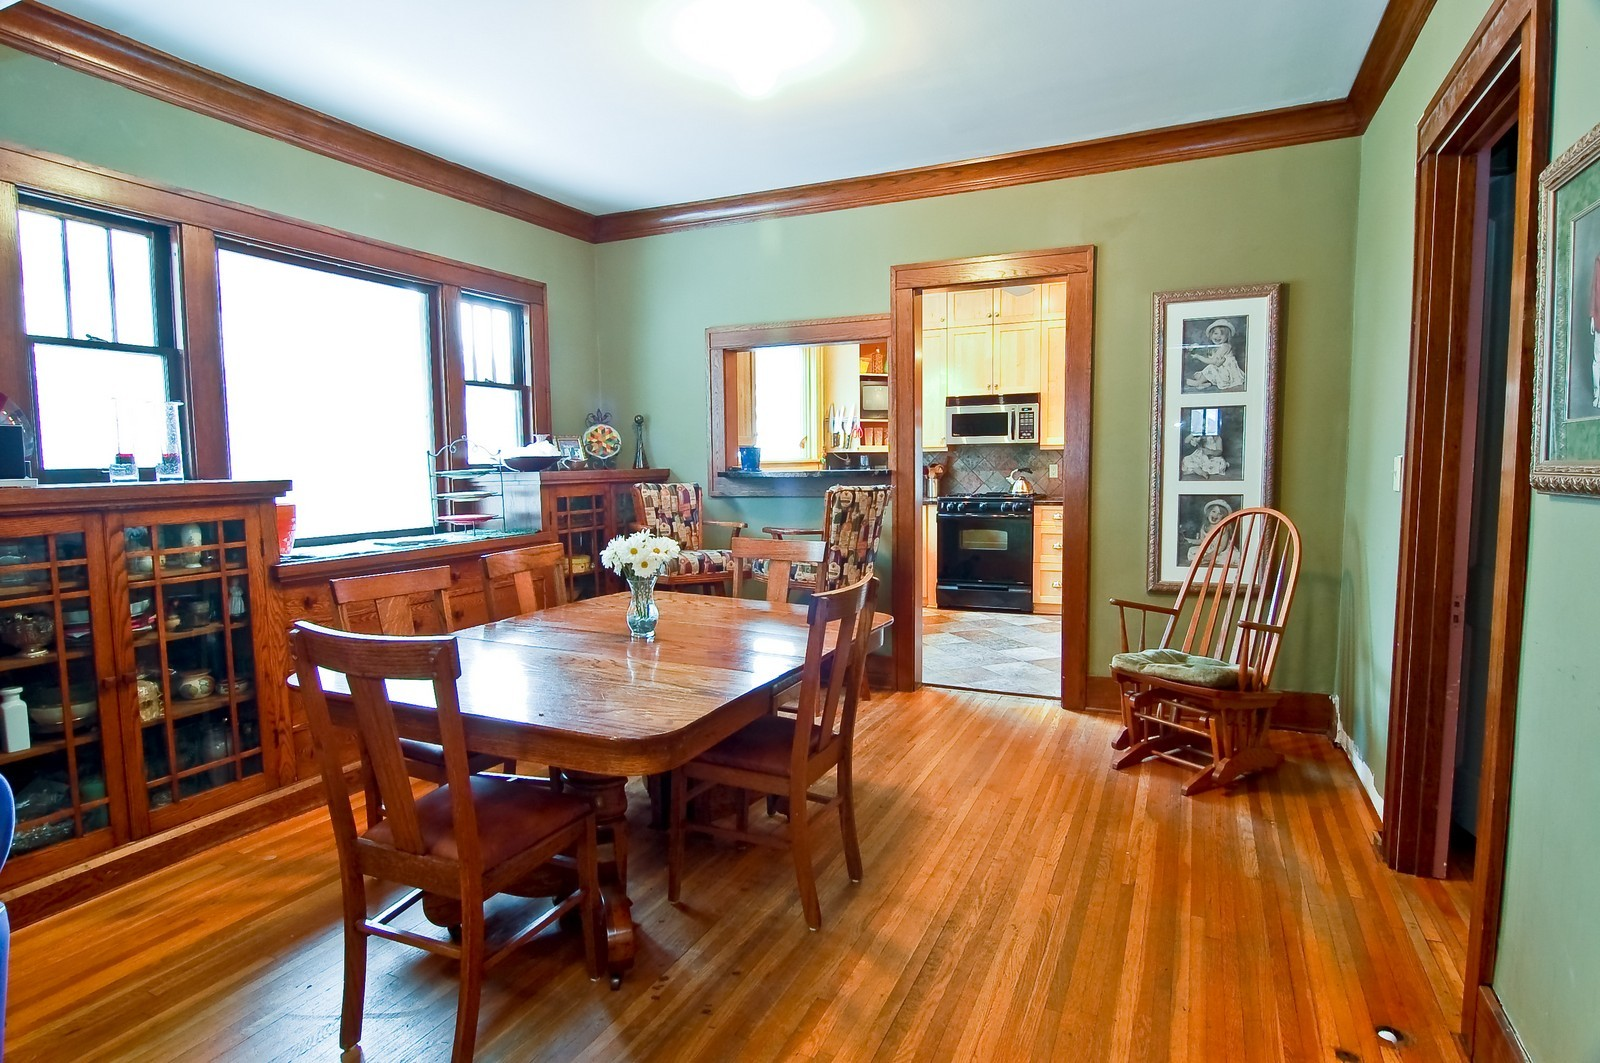 Real Estate Photography - 5012 Upton Avenue South, Minneapolis, MN, 55410 - Dining Room